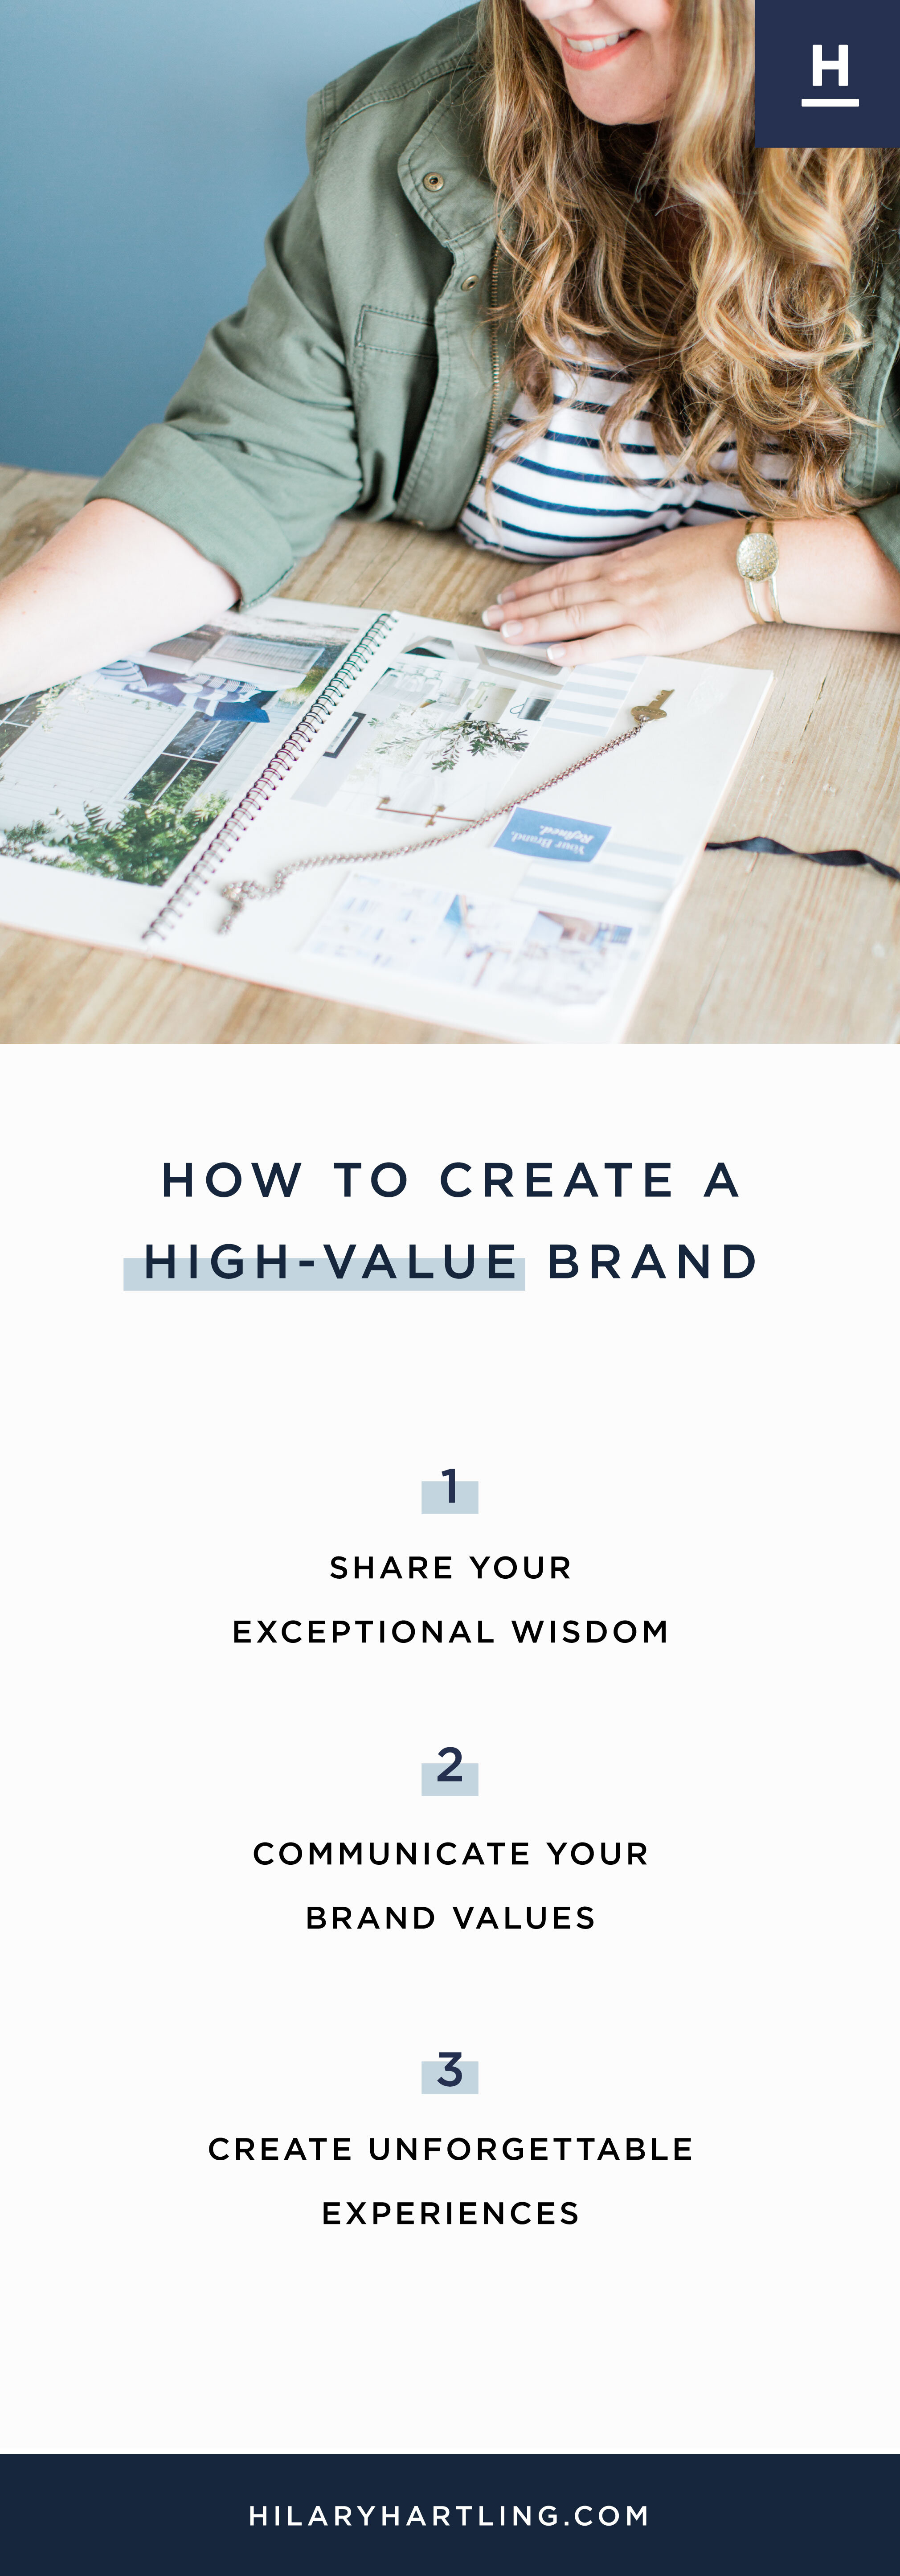 How-To-Create-A-High-Value-Brand.jpg